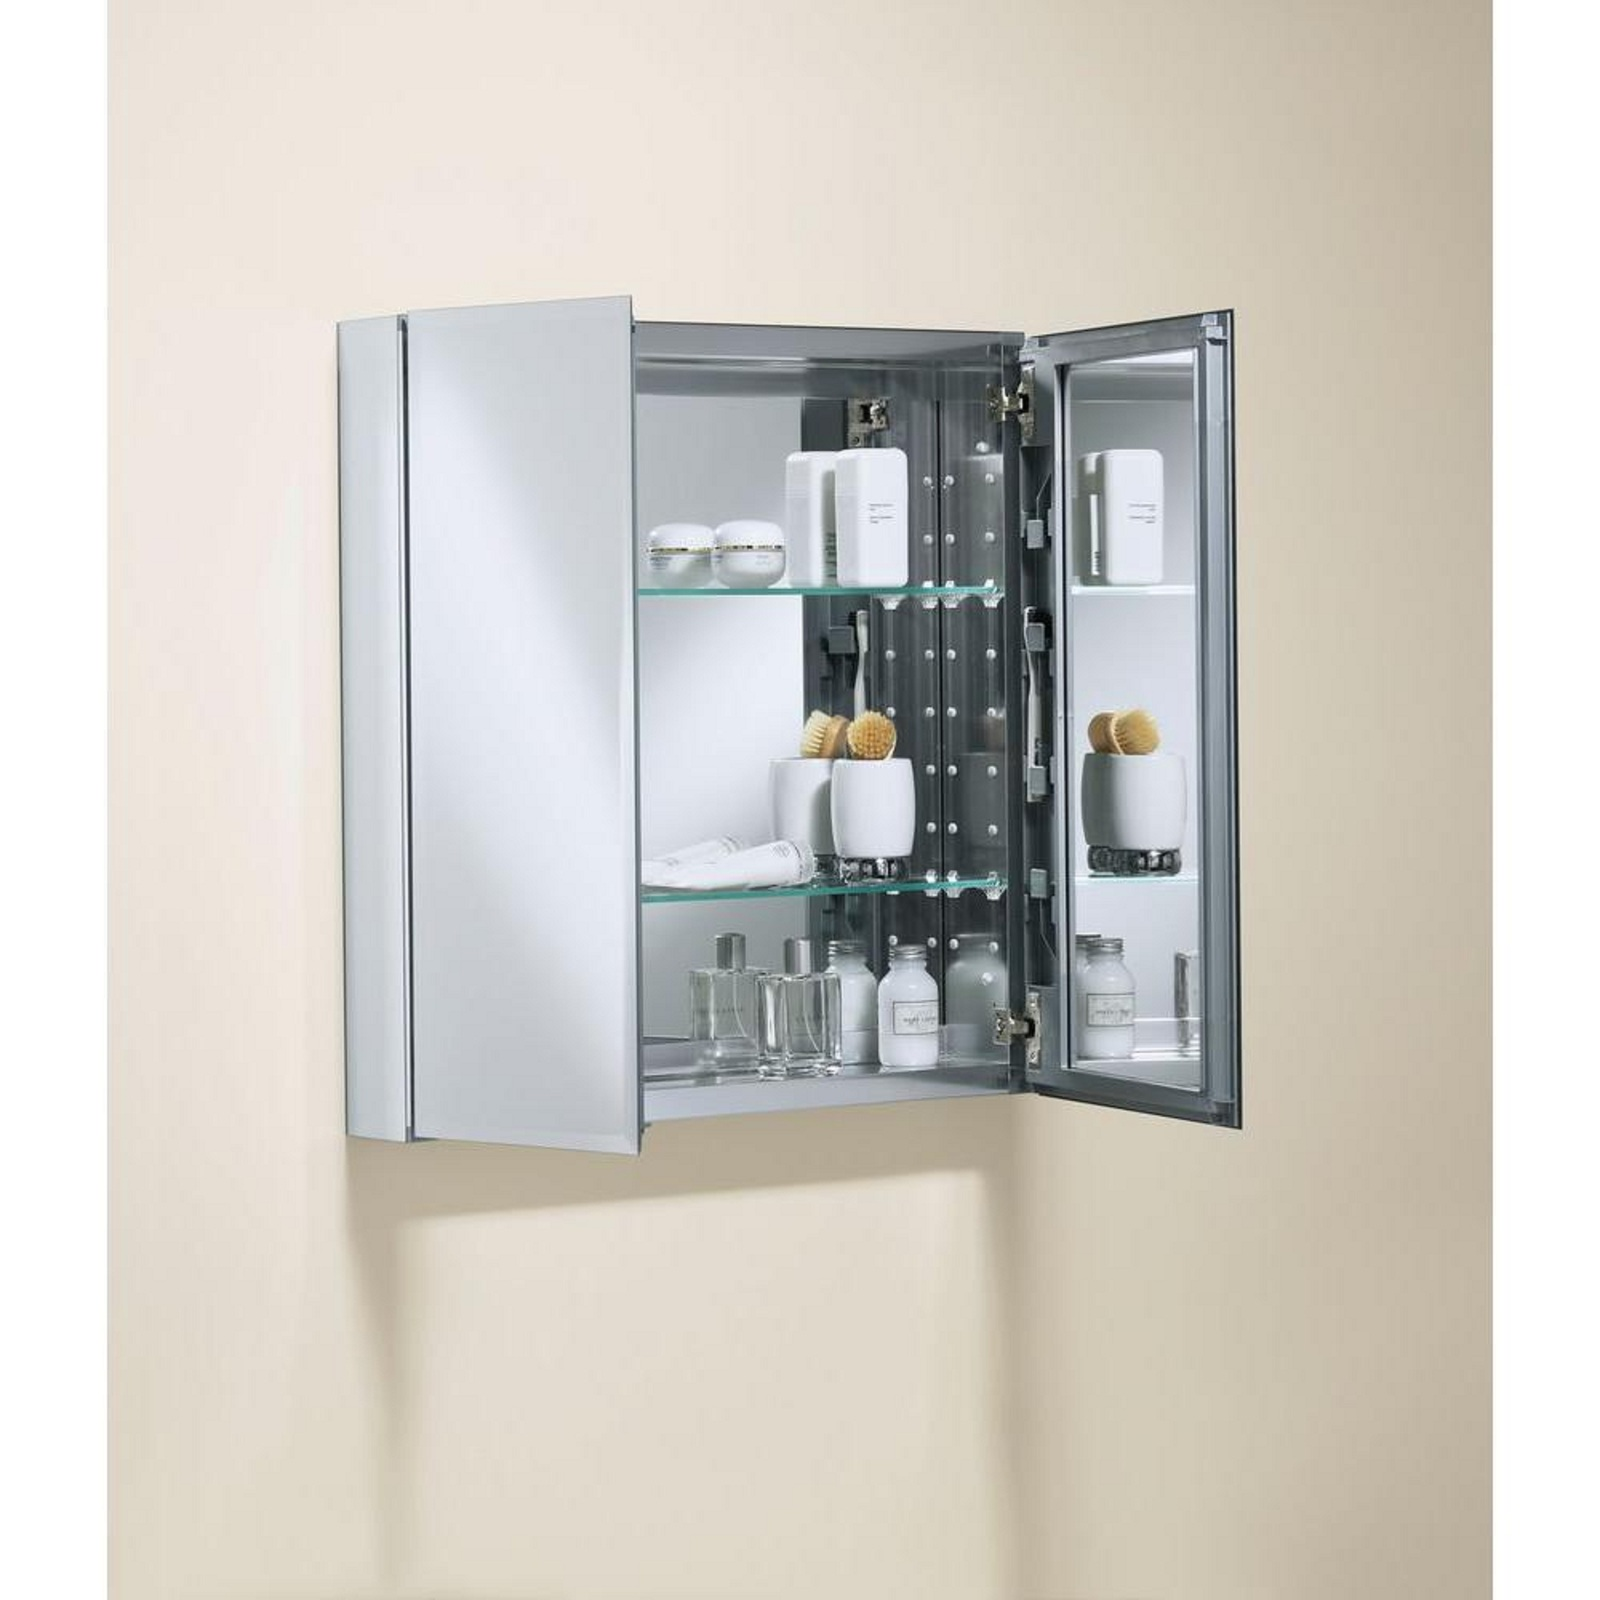 Medicine Storage Cabinet with Square Mirrored Double Door 25 in x 26 in x 5 in